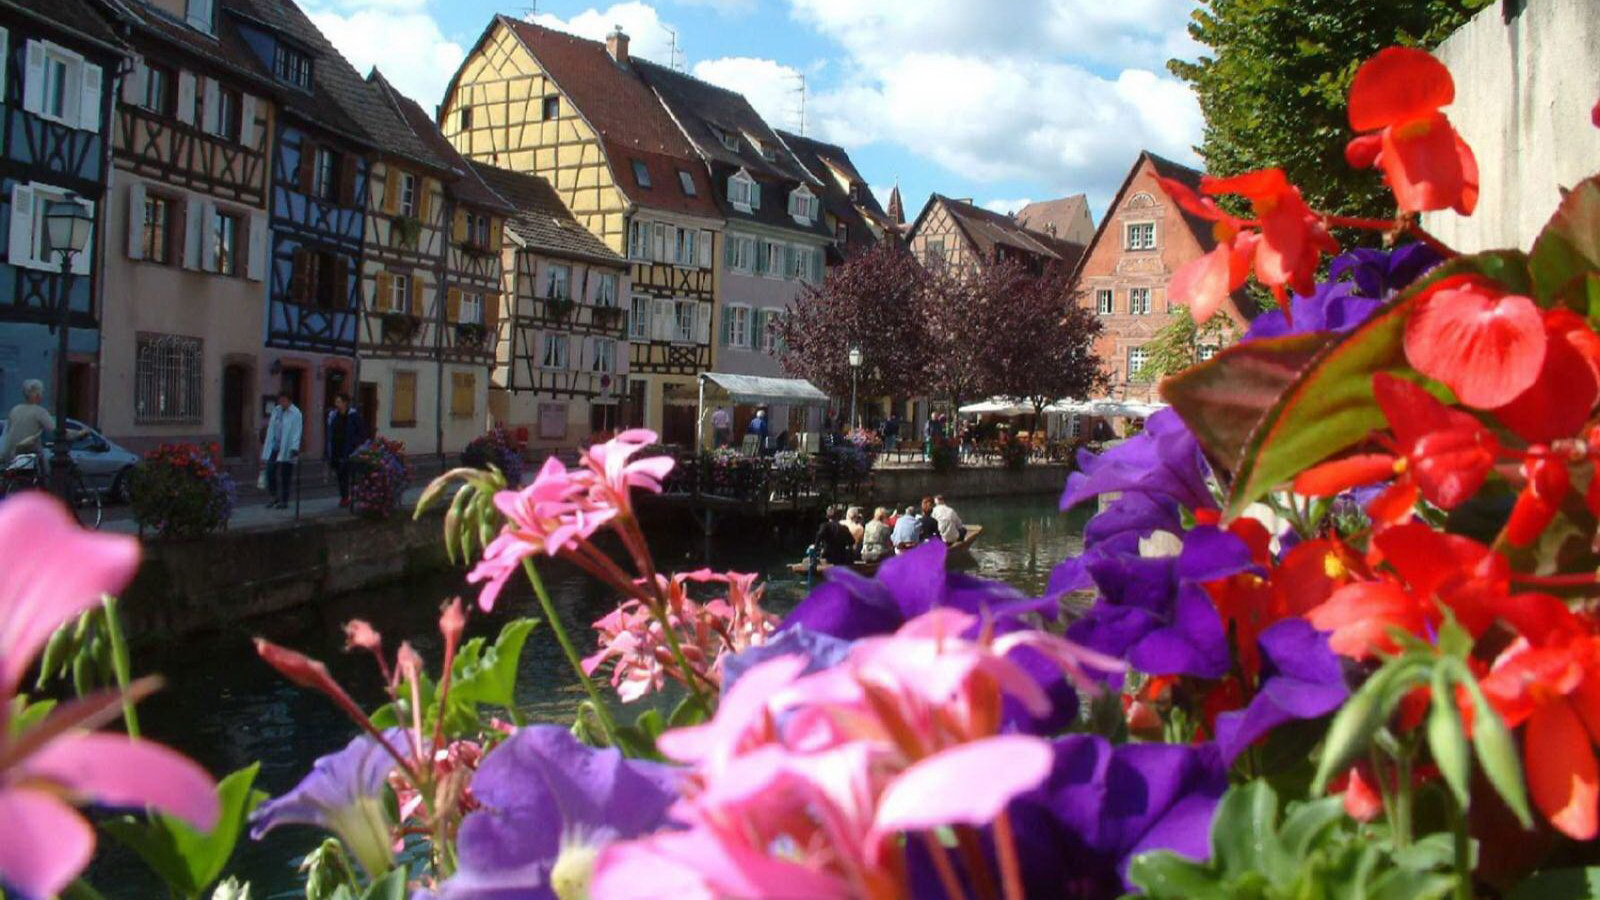 All about Alsace